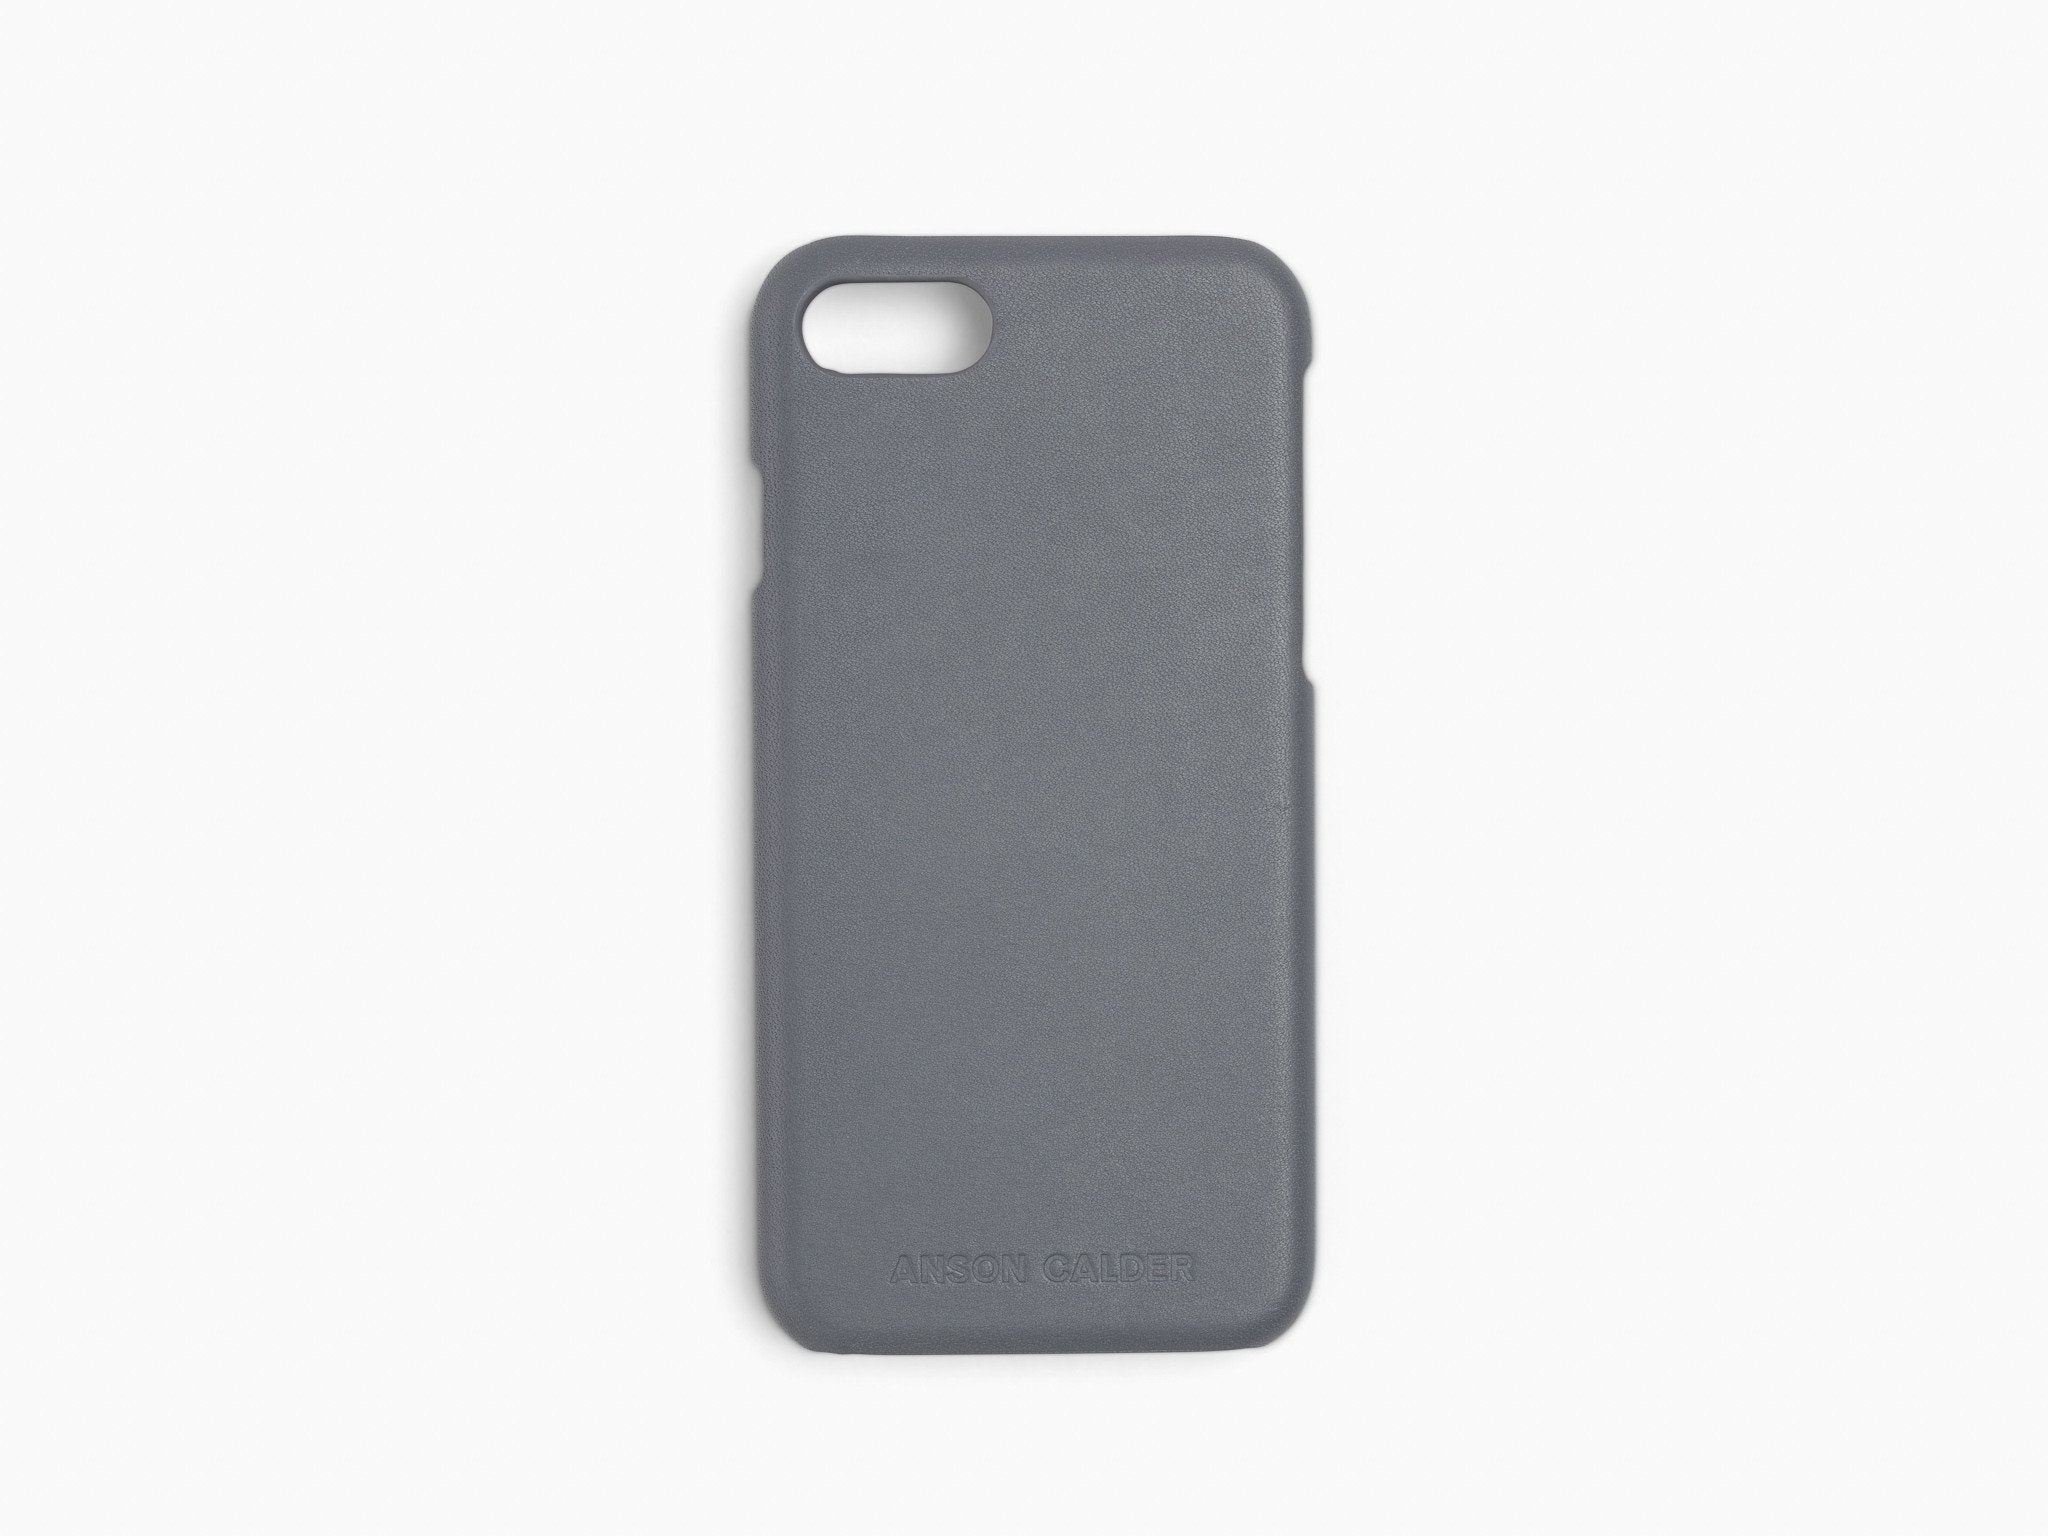 CALFSKIN iPHONE CASE CASES ANSON CALDER iPhone 7 !iphone7